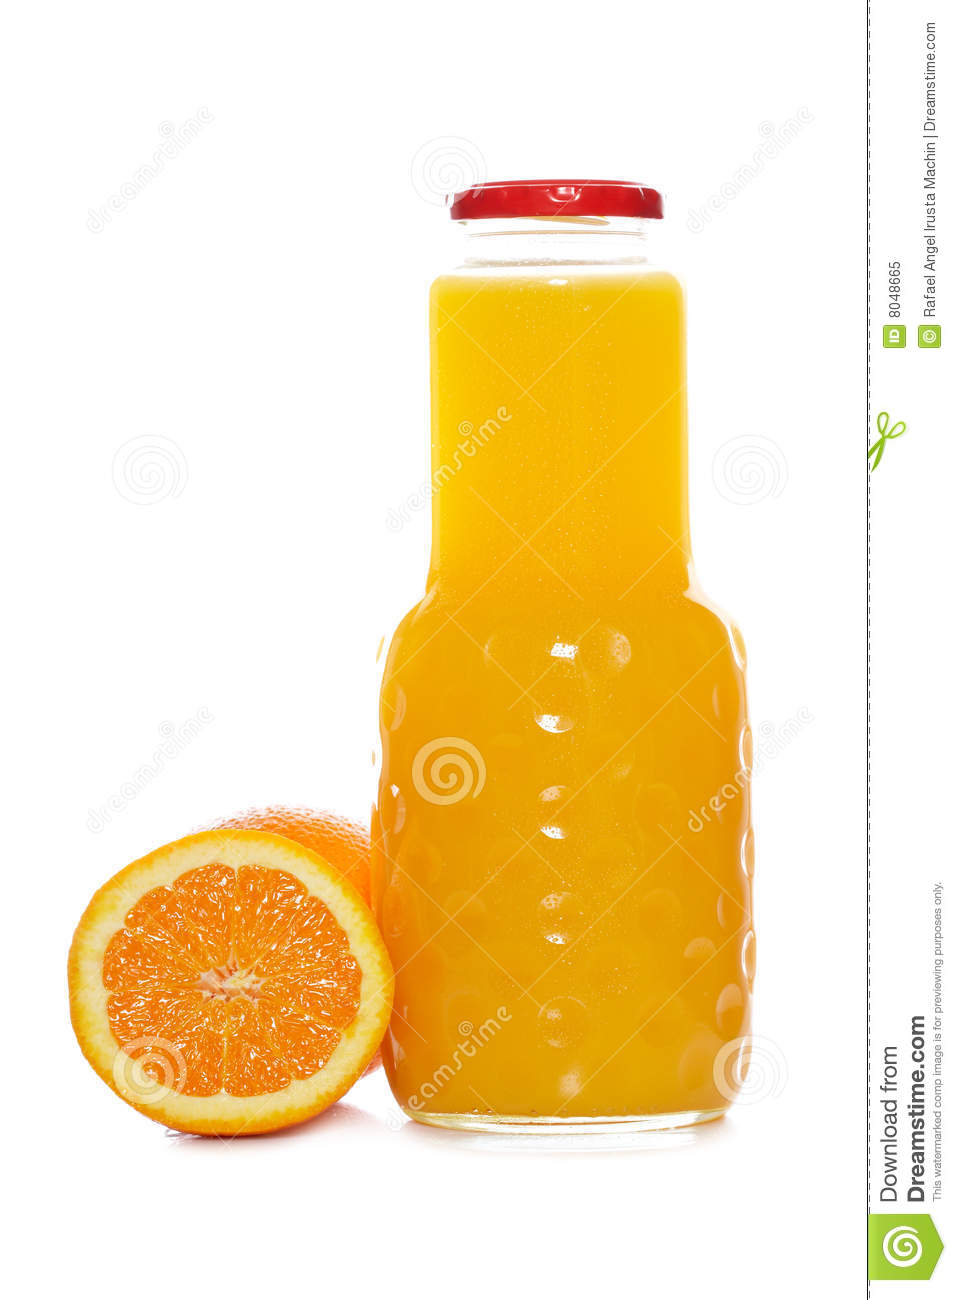 orangensaft test 2017